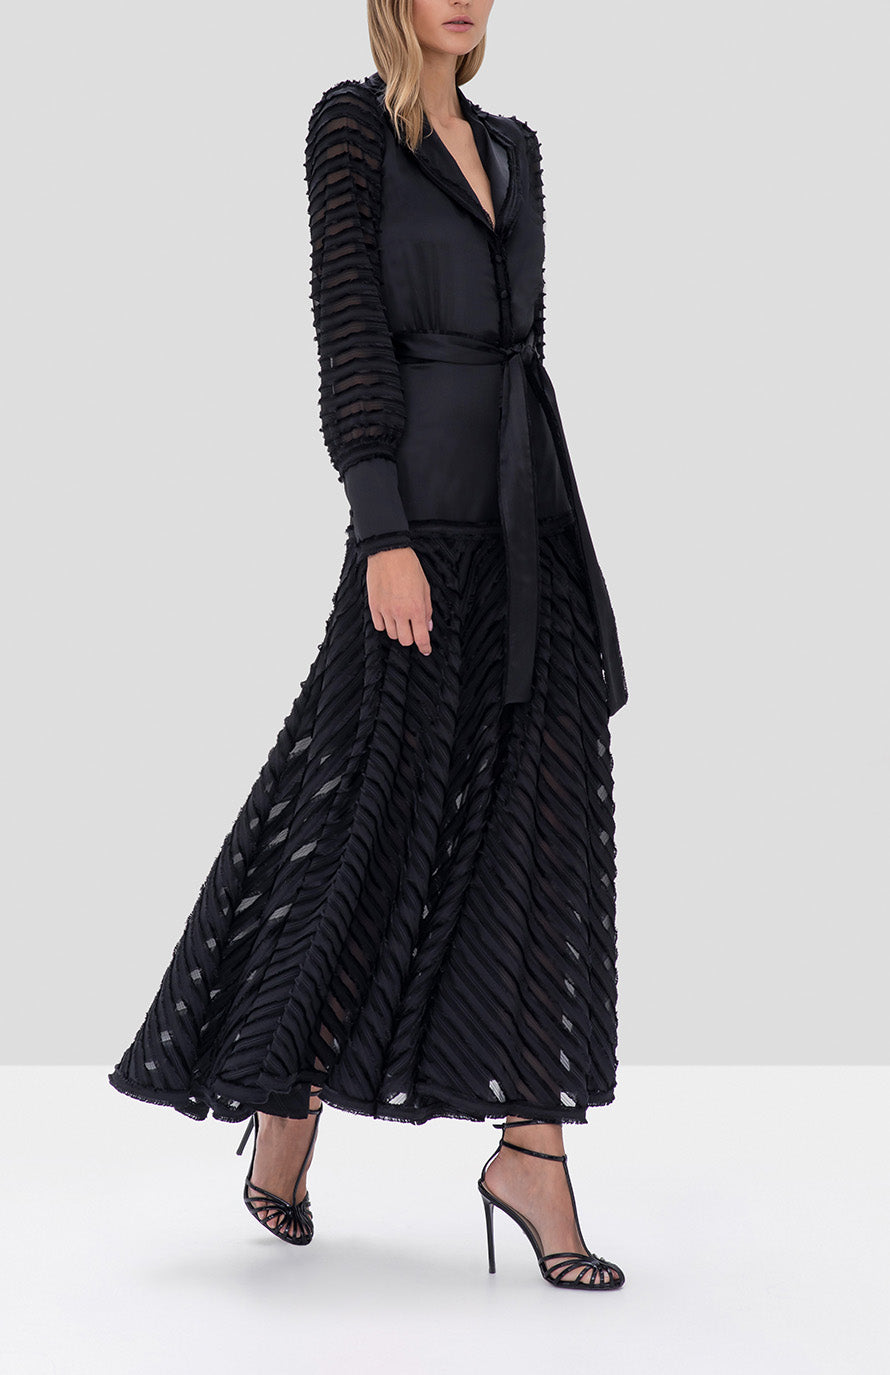 Alexis Juliska Dress in Black from the Fall Winter 2019 Ready To Wear Collection - Rear View